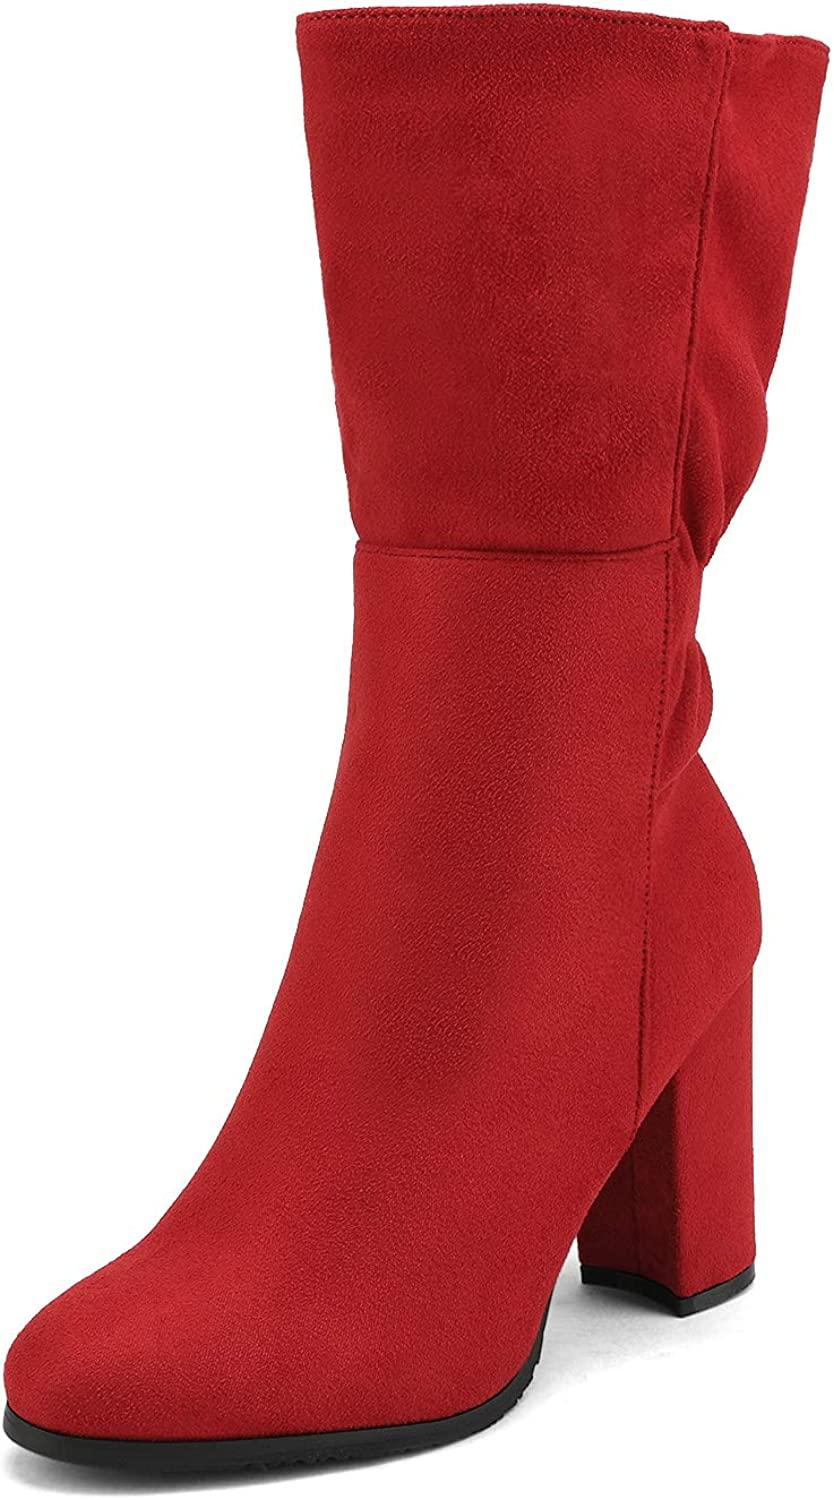 DREAM PAIRS Women's RED Mid Calf High Heel Boots Size 6 M US Dee